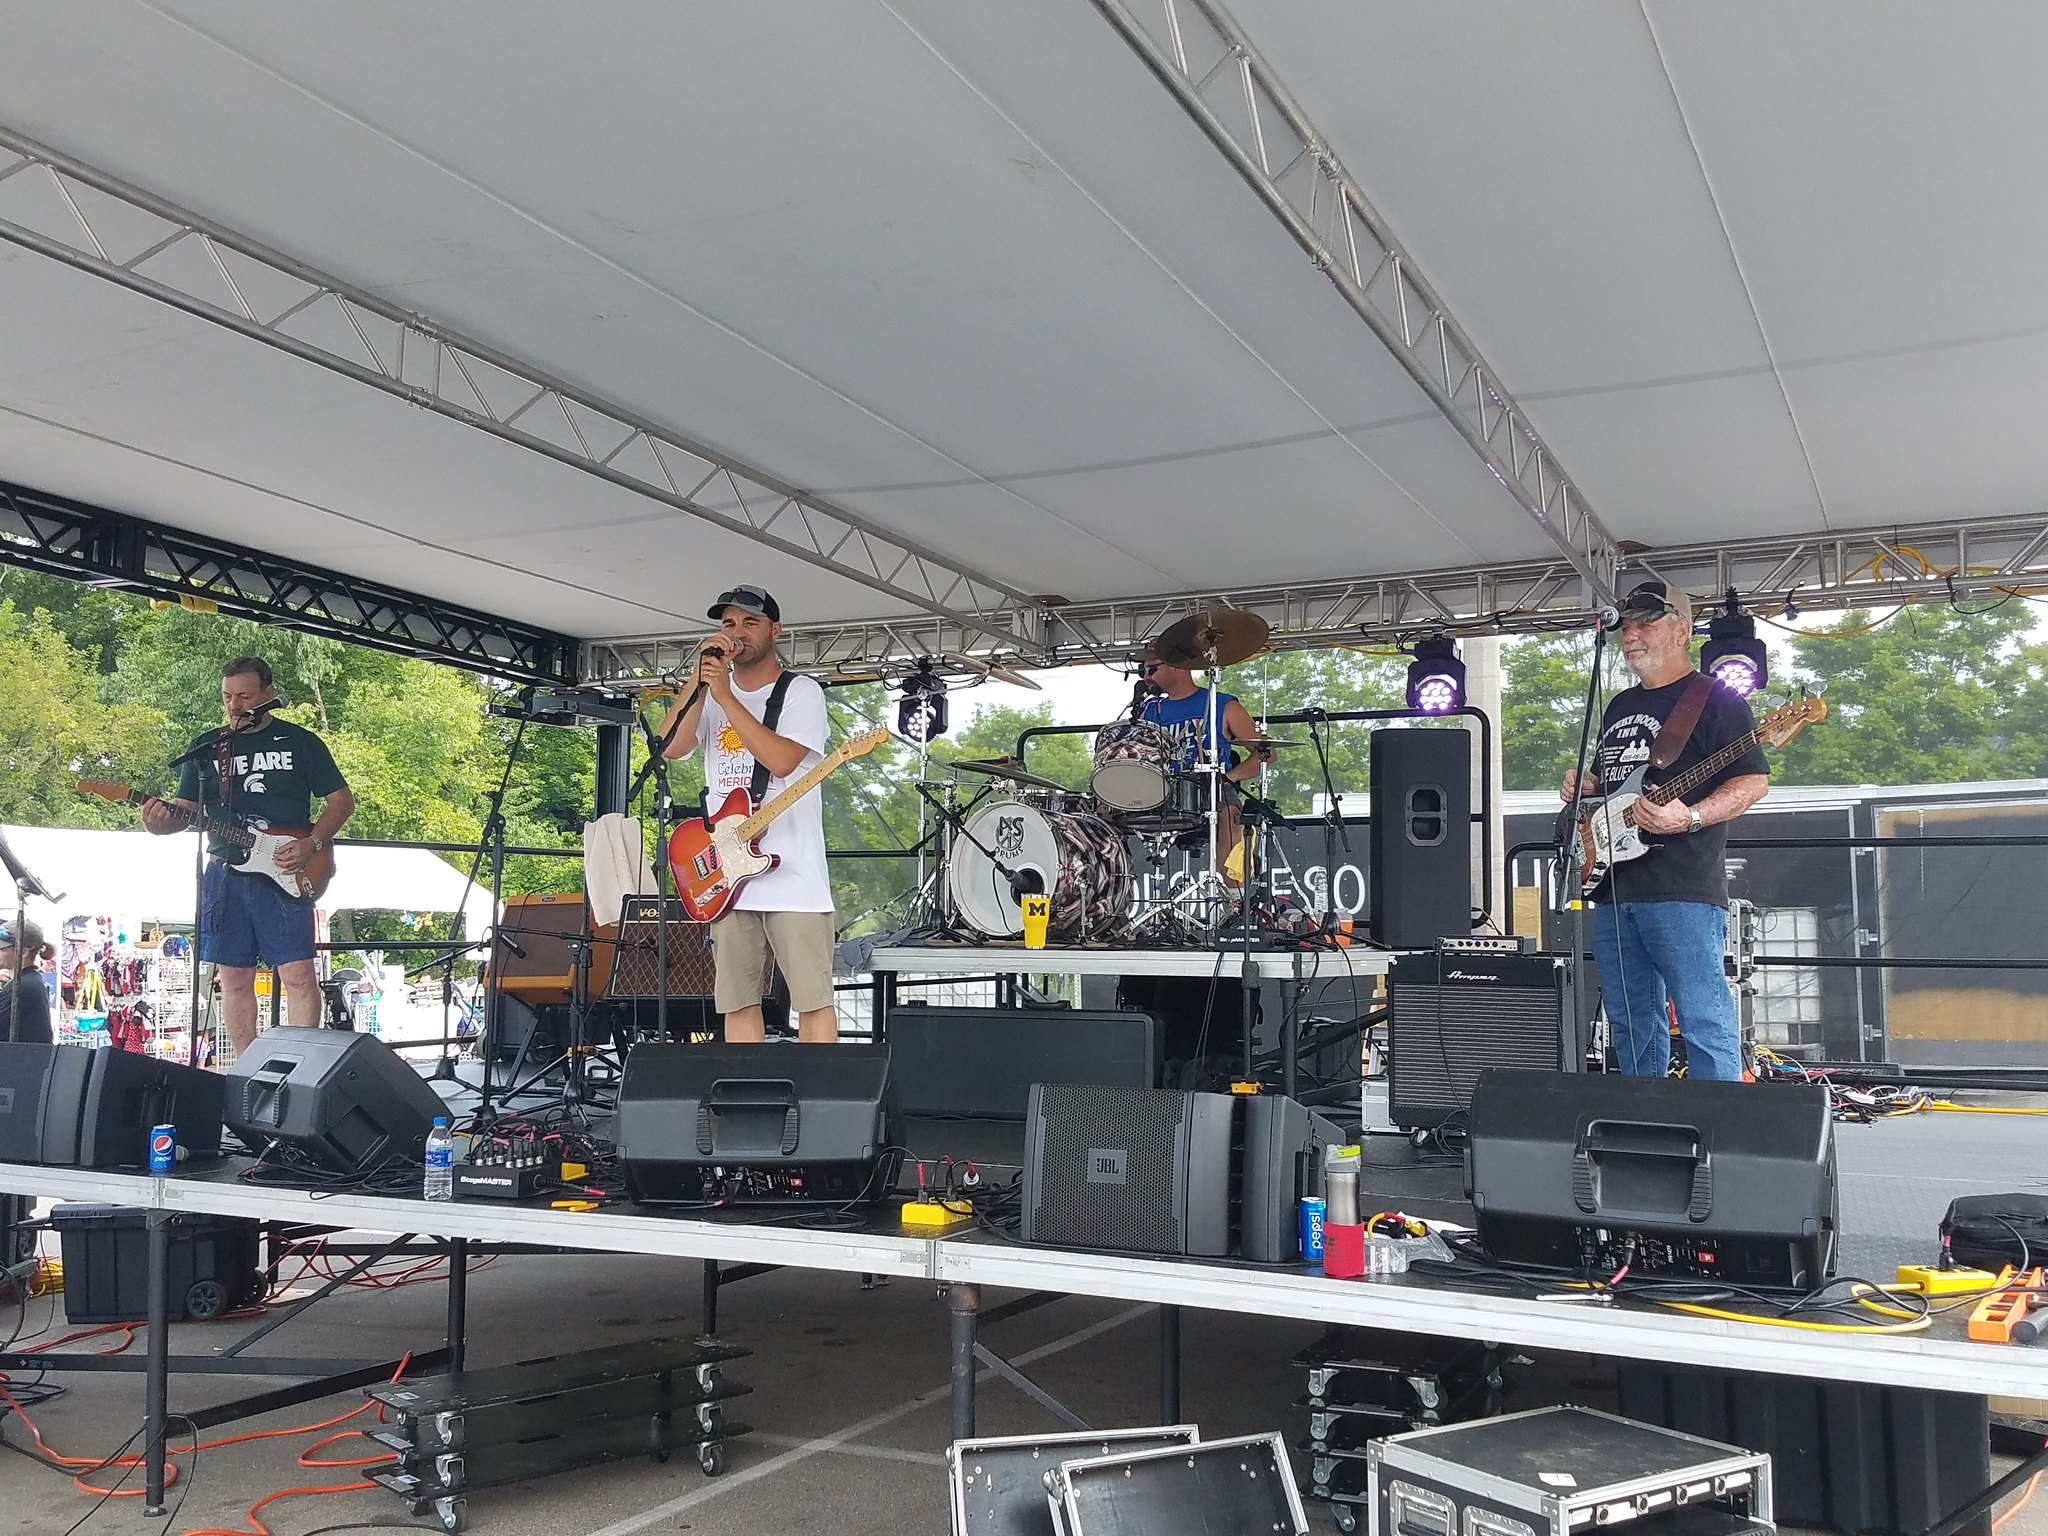 Meridian Township Gets Ready for 2019 Celebrate Meridian Festival